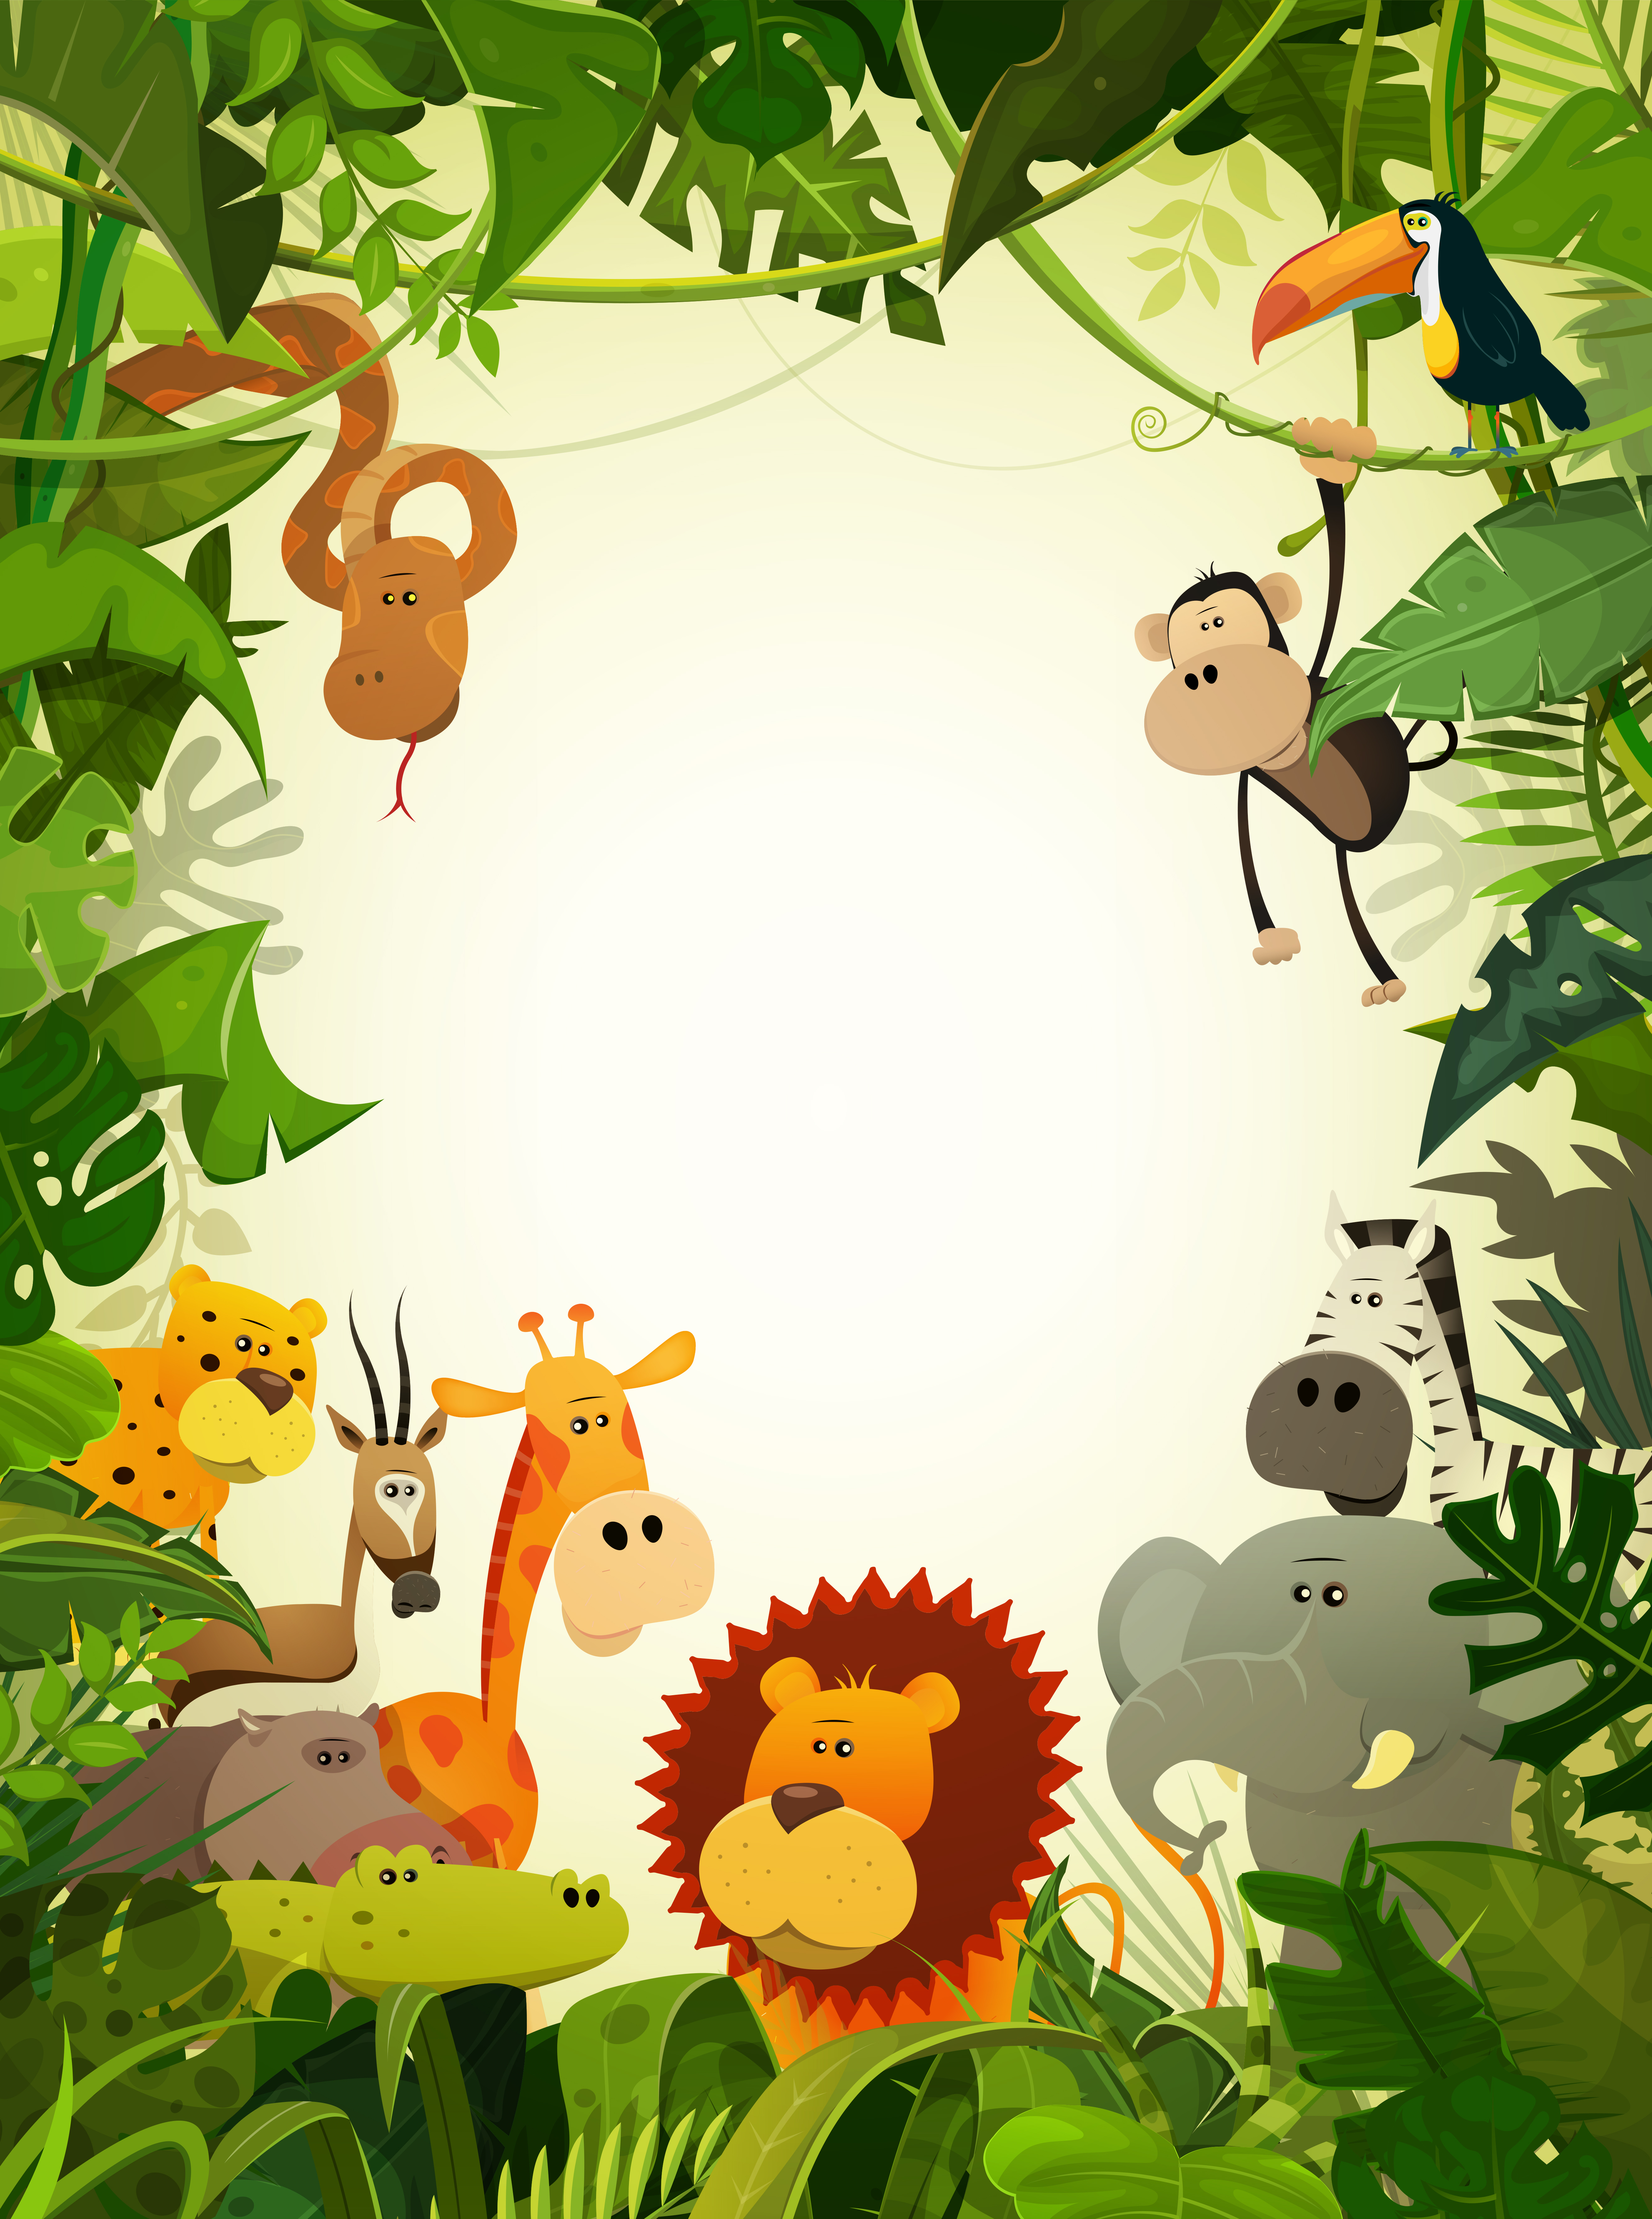 Wildlife Animals Wallpaper - Download Free Vectors ...